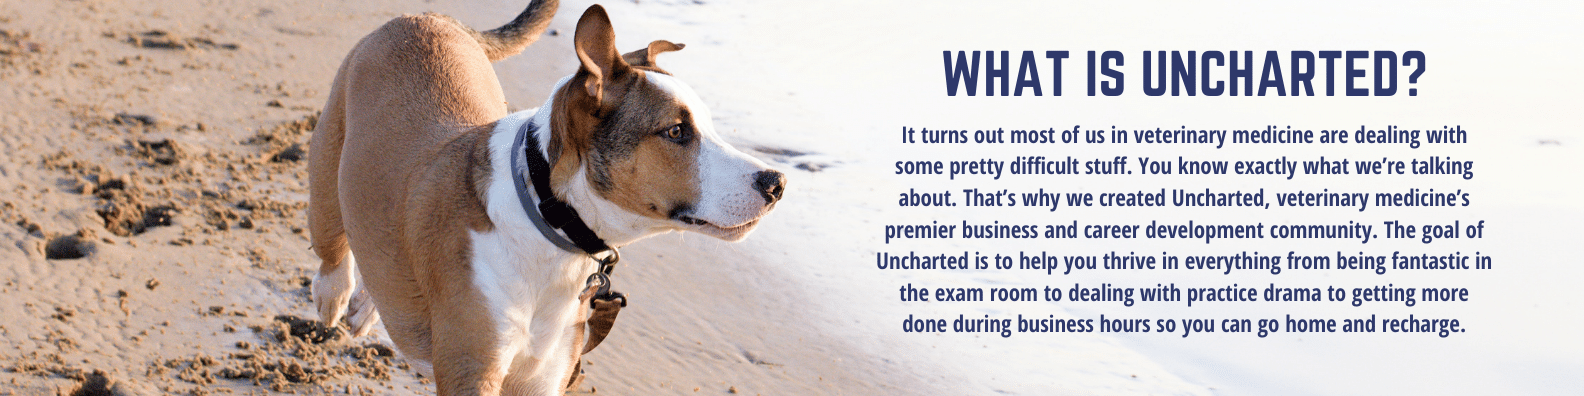 Photo of dog on beach, description of the Uncharted Veterinary Community